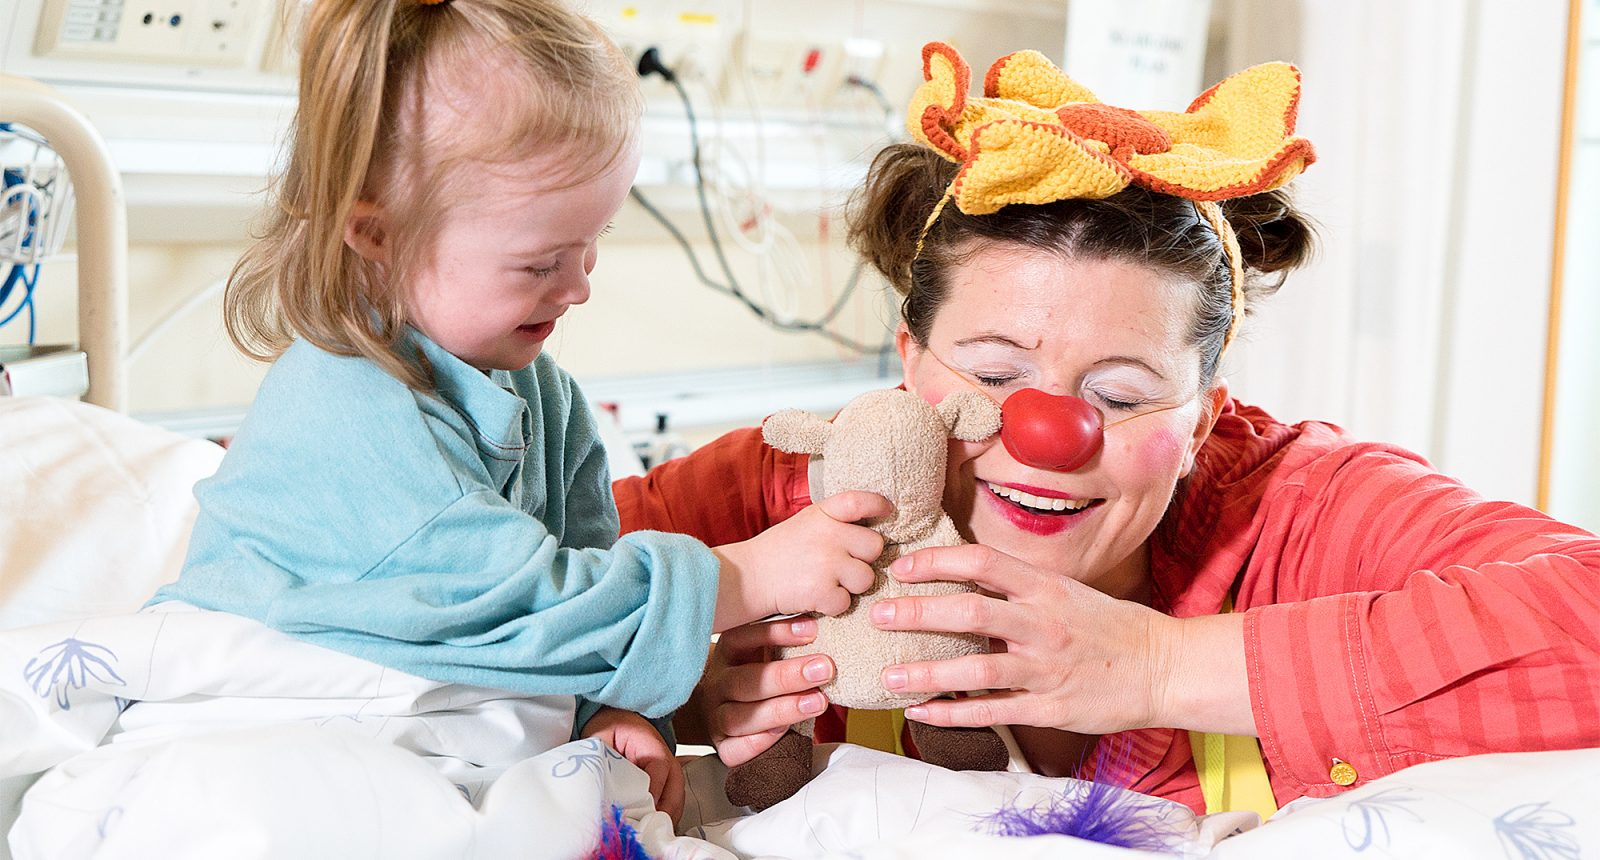 Lady clown playing with a little girl sitting in a hospital bed